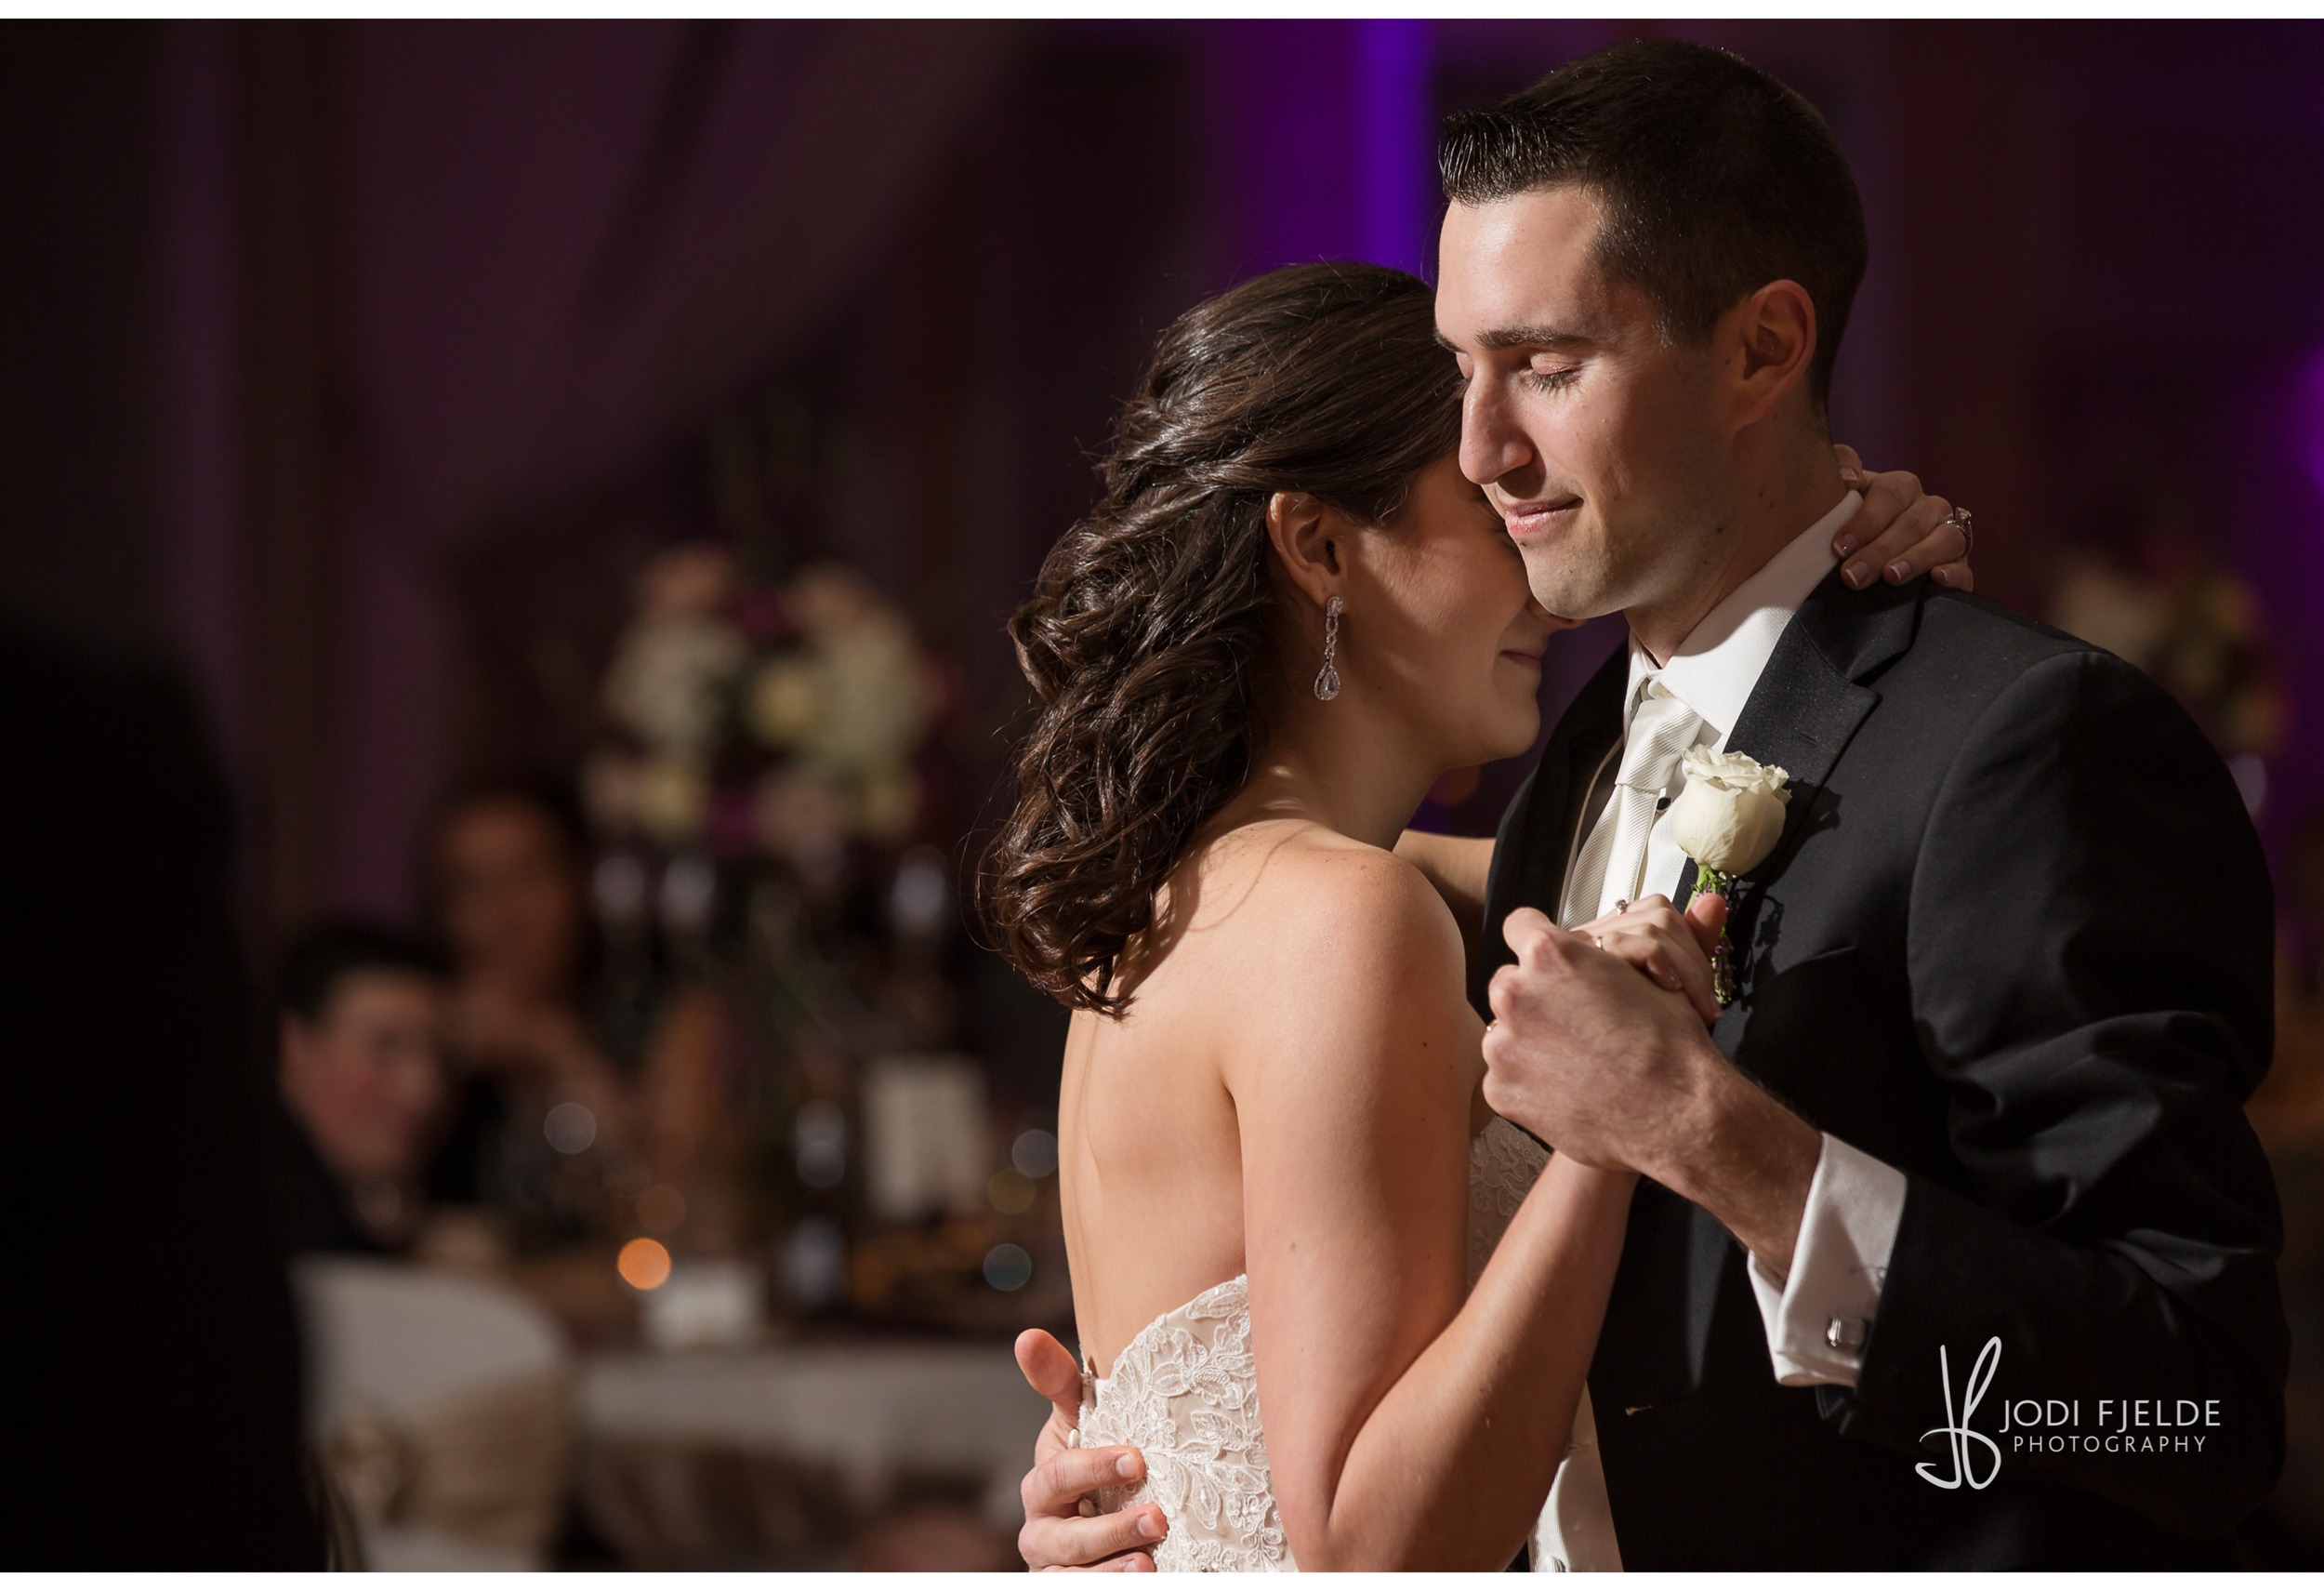 Benvenuto_Palm_Beach_Wedding_Jewish_Michelle & Jason_Jodi_Fjedle_Photography 49.jpg